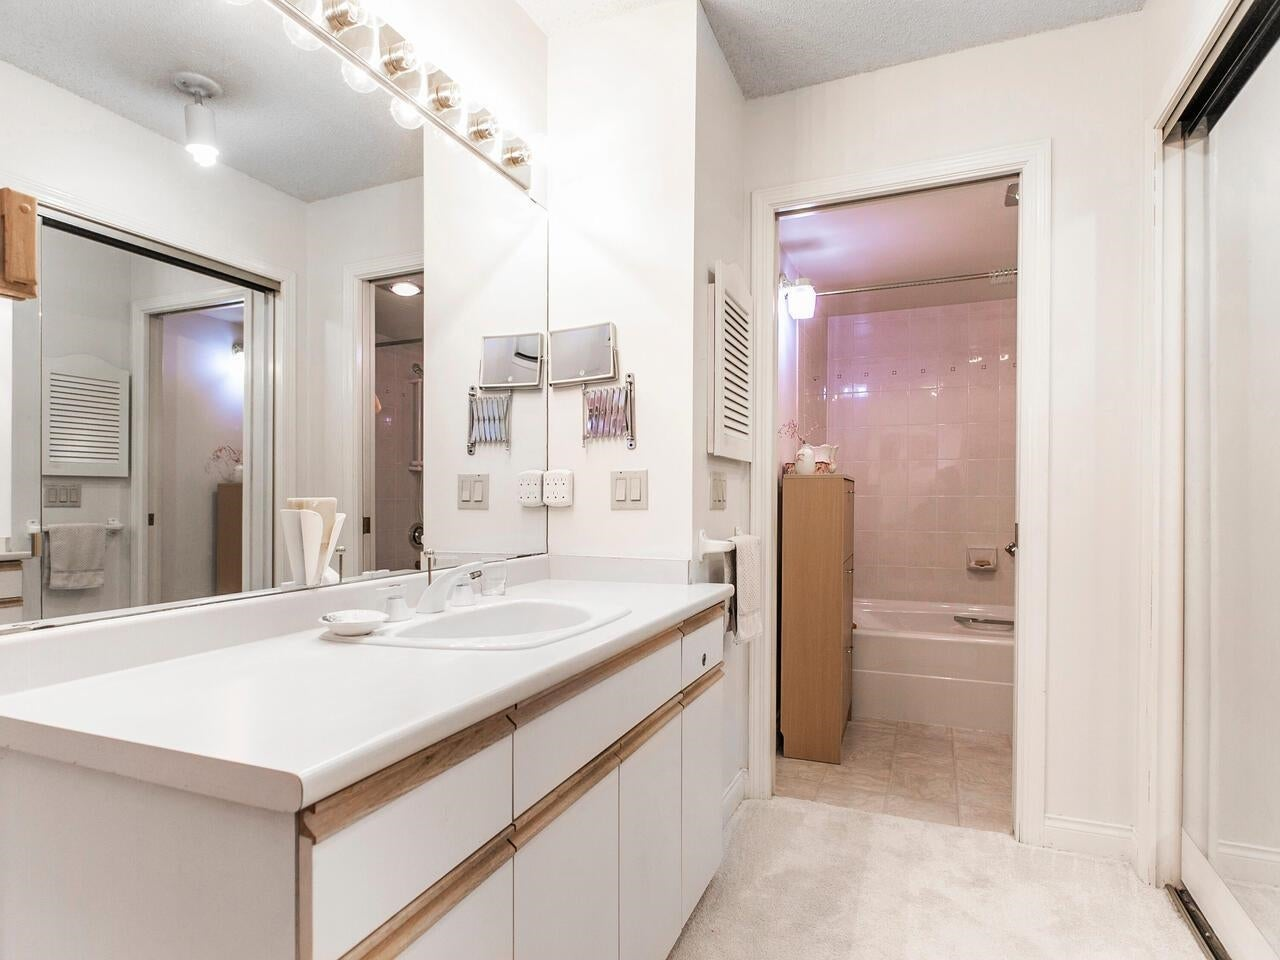 104 2800 CHESTERFIELD AVENUE - Upper Lonsdale Apartment/Condo for sale, 2 Bedrooms (R2603260) - #17